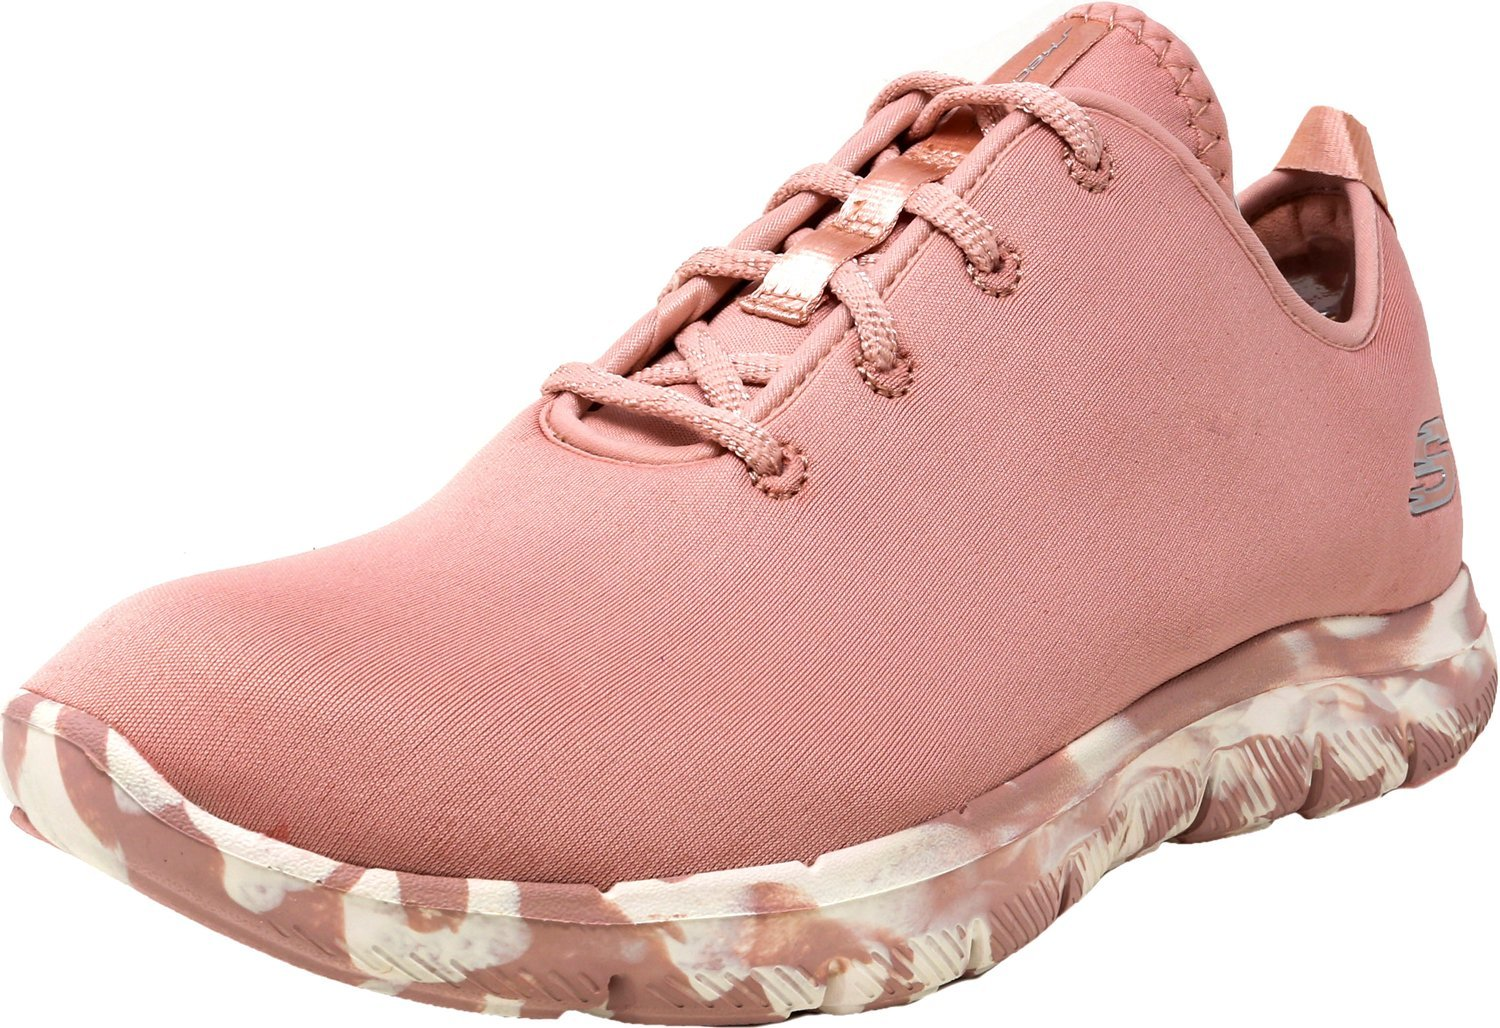 Skechers Flex Appeal 2.0 Last Word Womens Sneakers B079H3PT96 7 M US|Pink